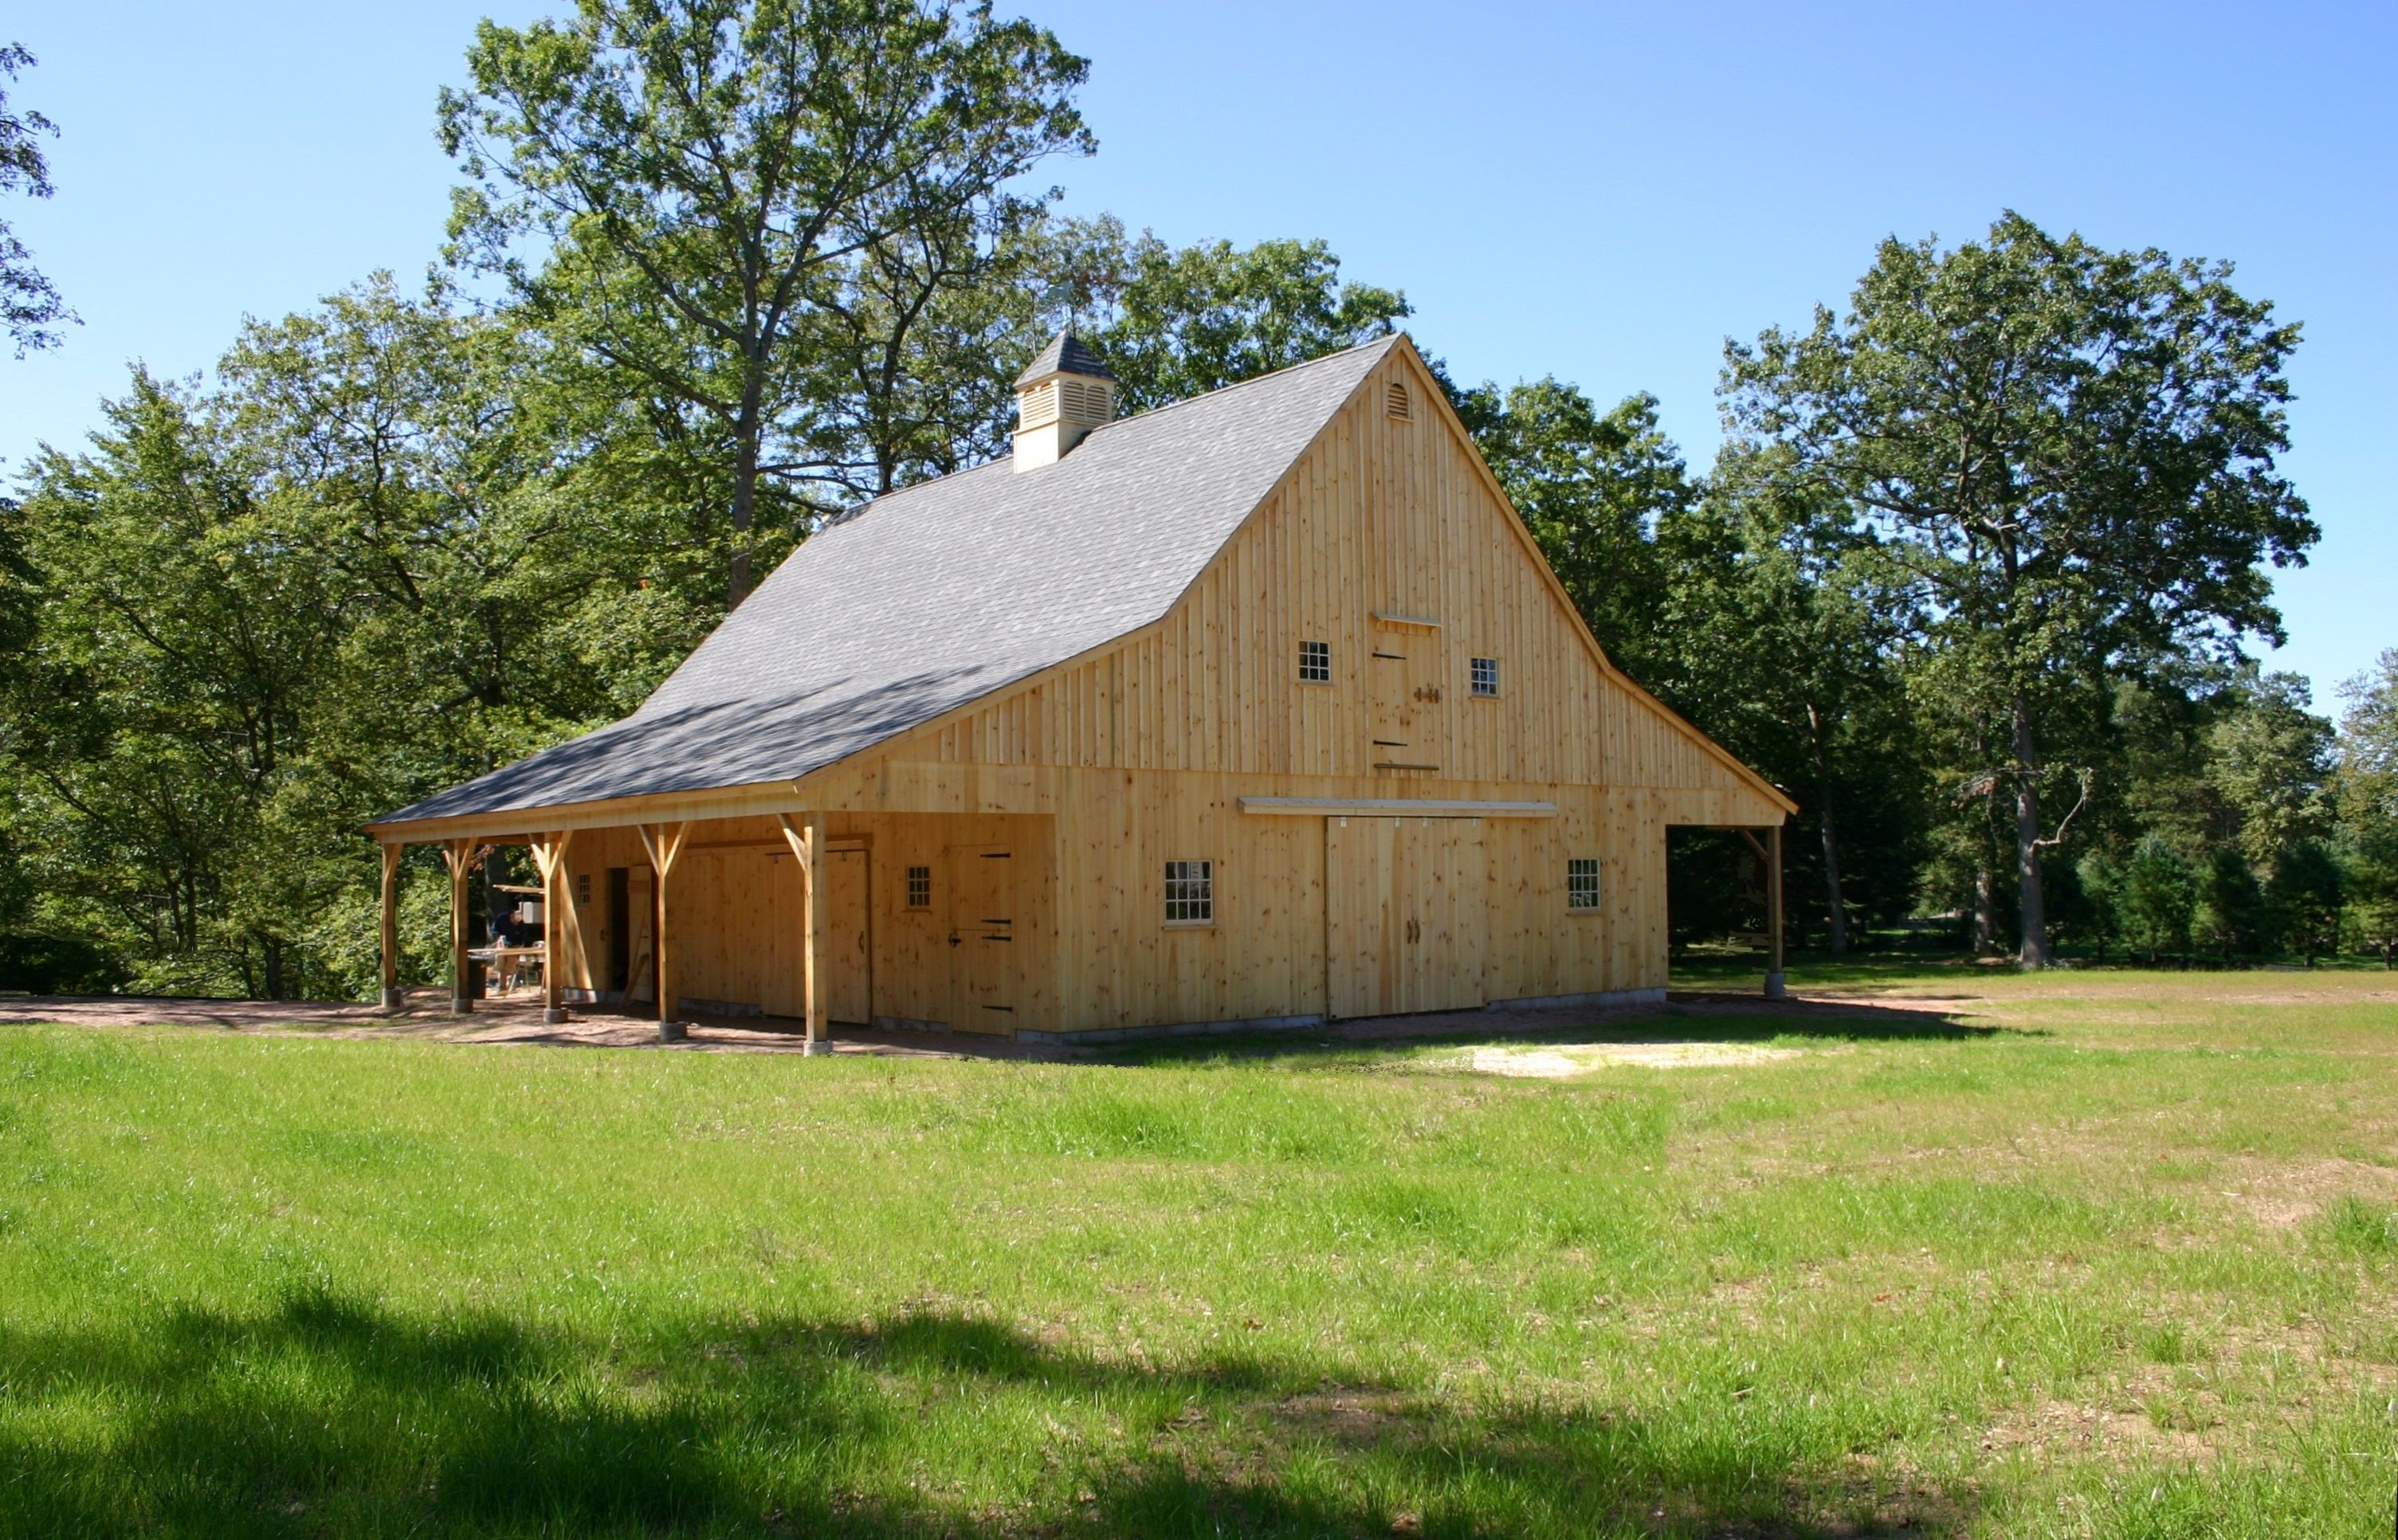 Our 36'x 48' Post & Beam Gentleman's Horse Barn With Two